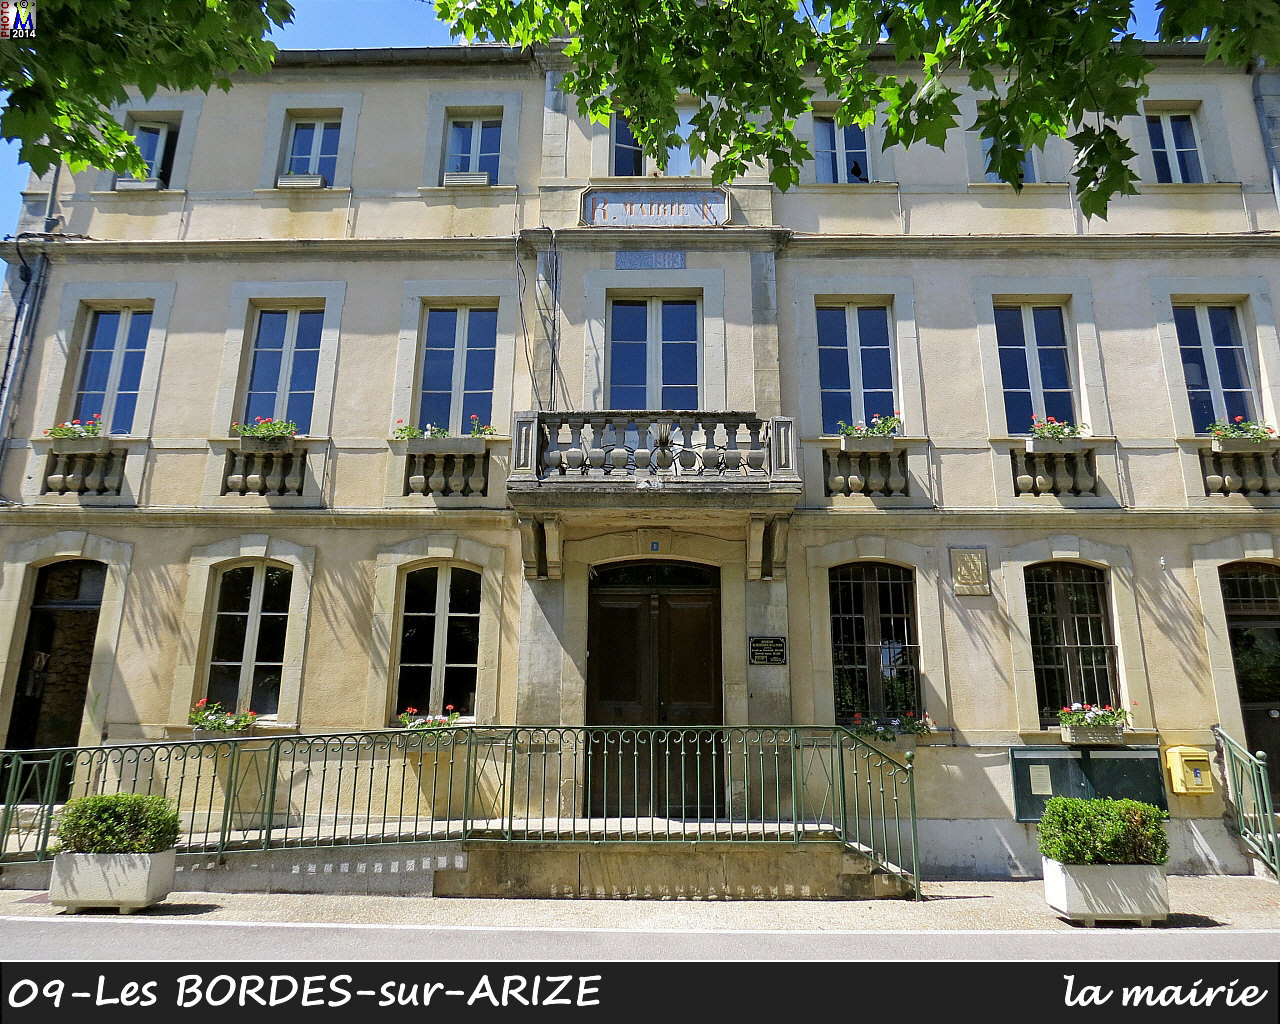 09BORDES-ARIZE_mairie_100.jpg